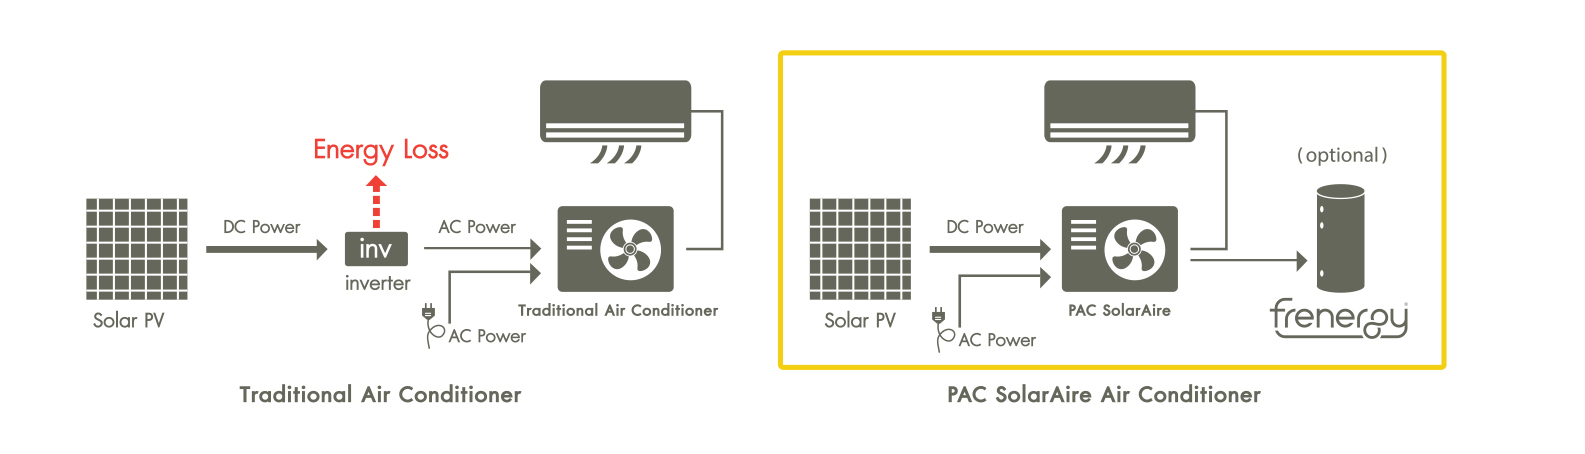 PAC SolarAire - Air conditioner with solar energy